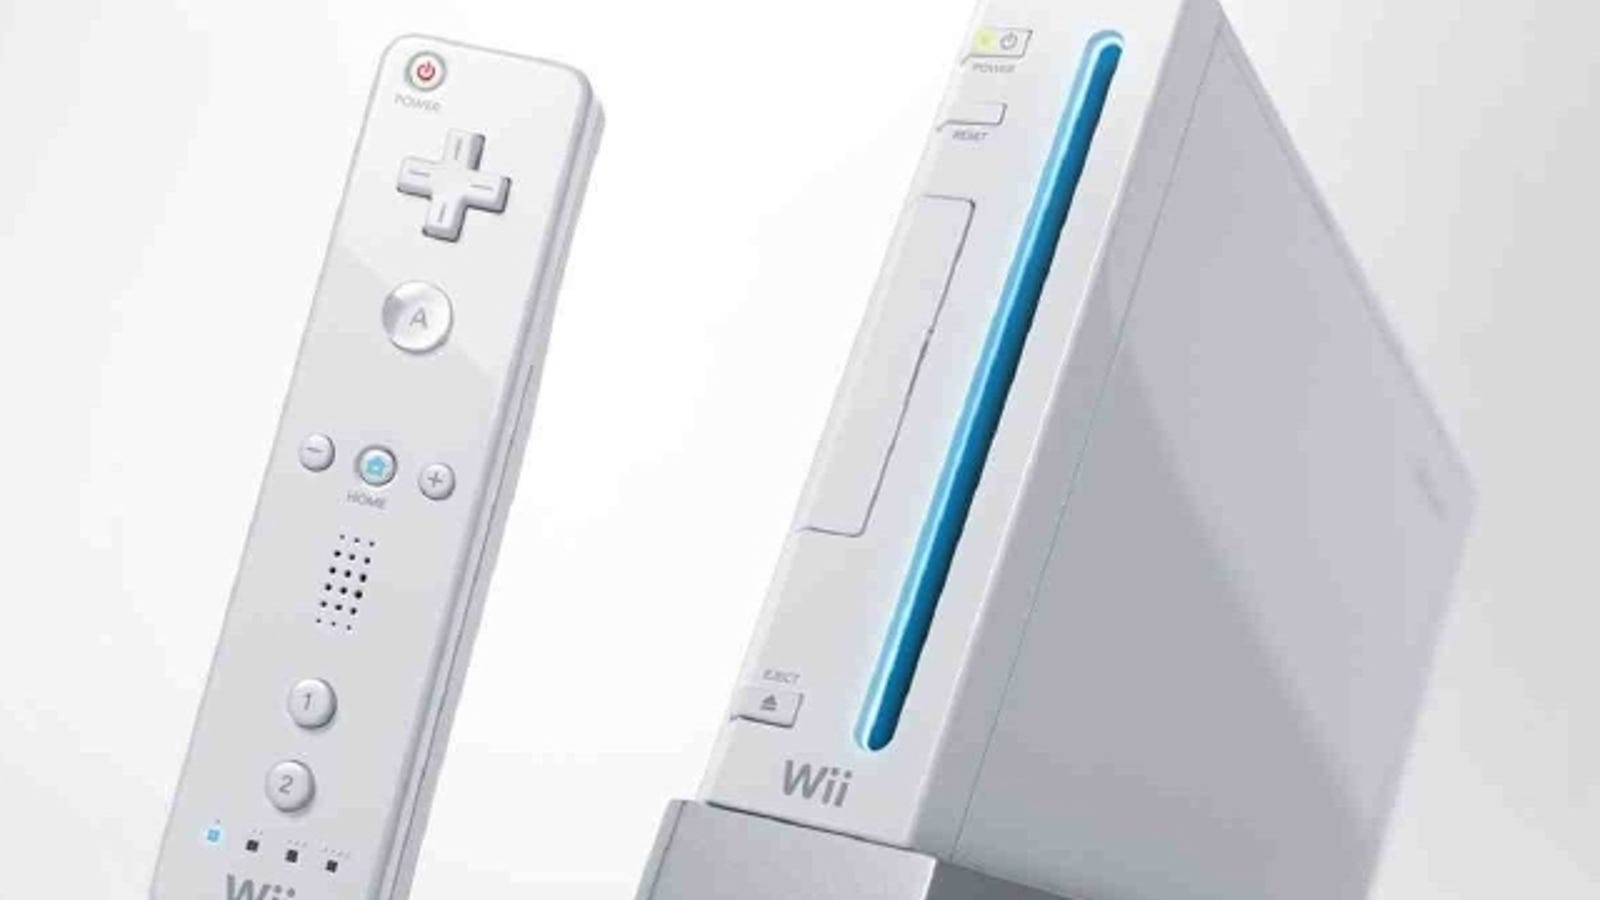 Wii and sex